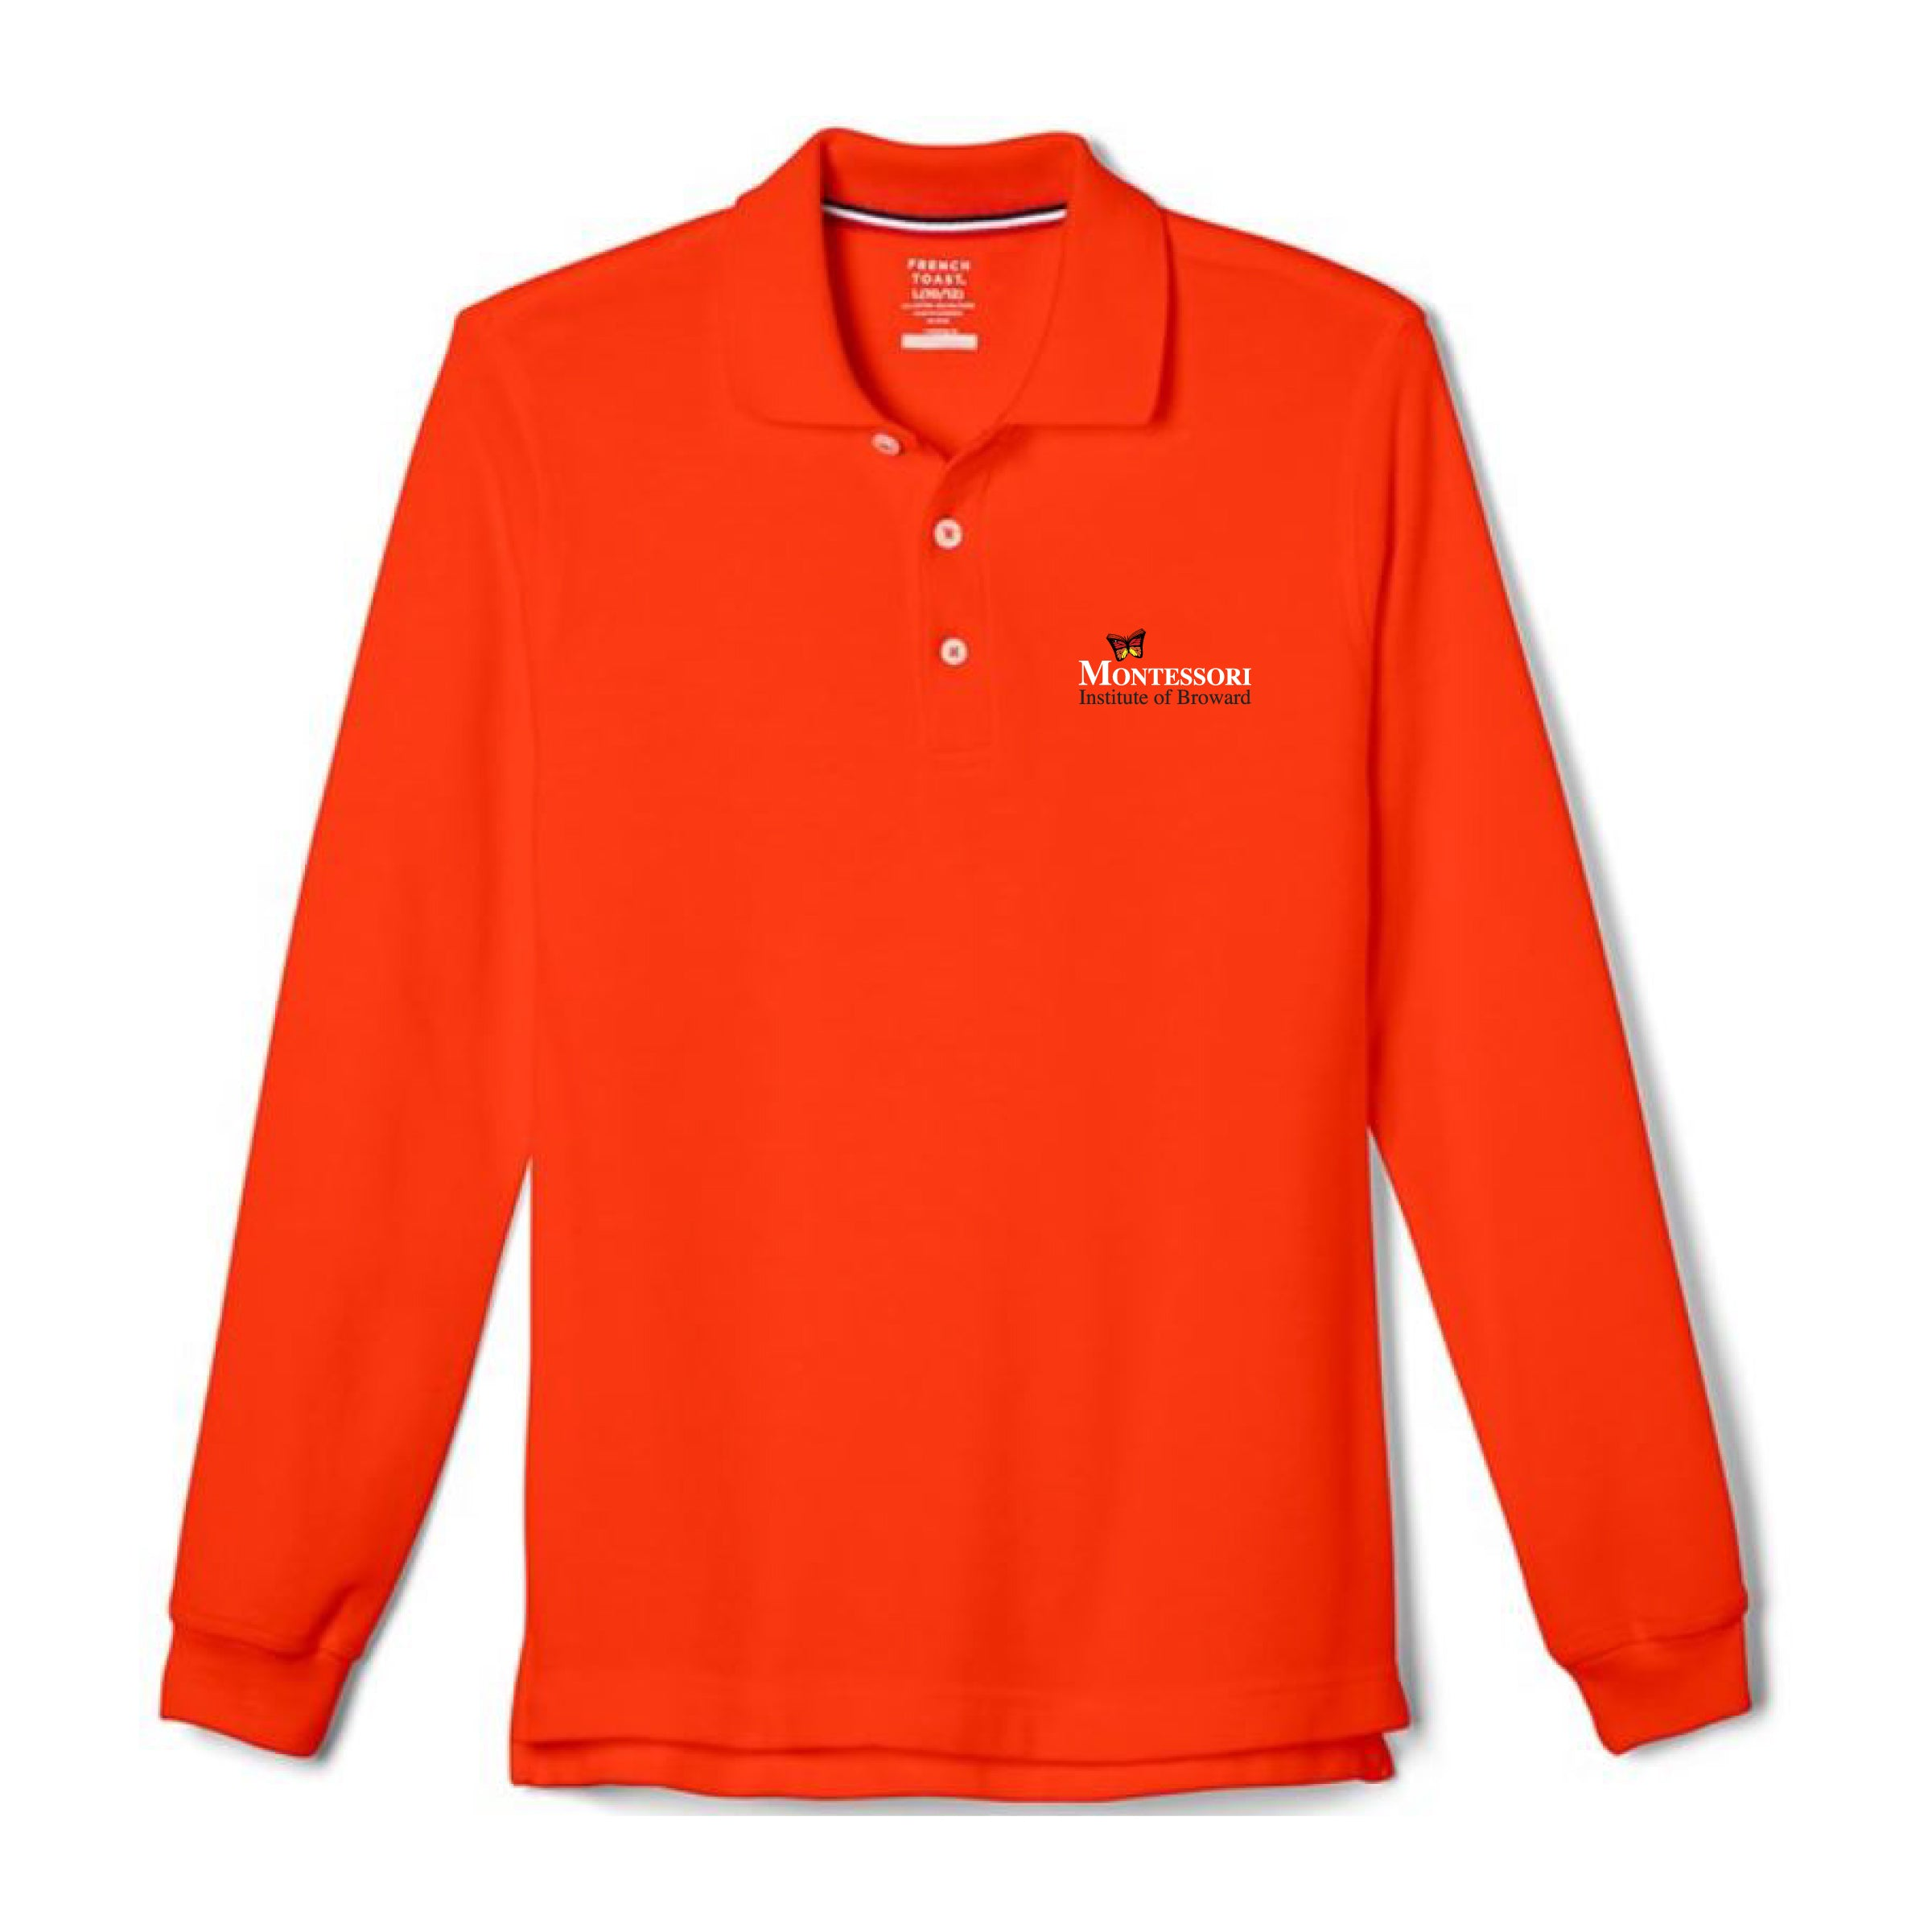 Montessori Institute of Broward - YOUTH Long Sleeve Pique Polo